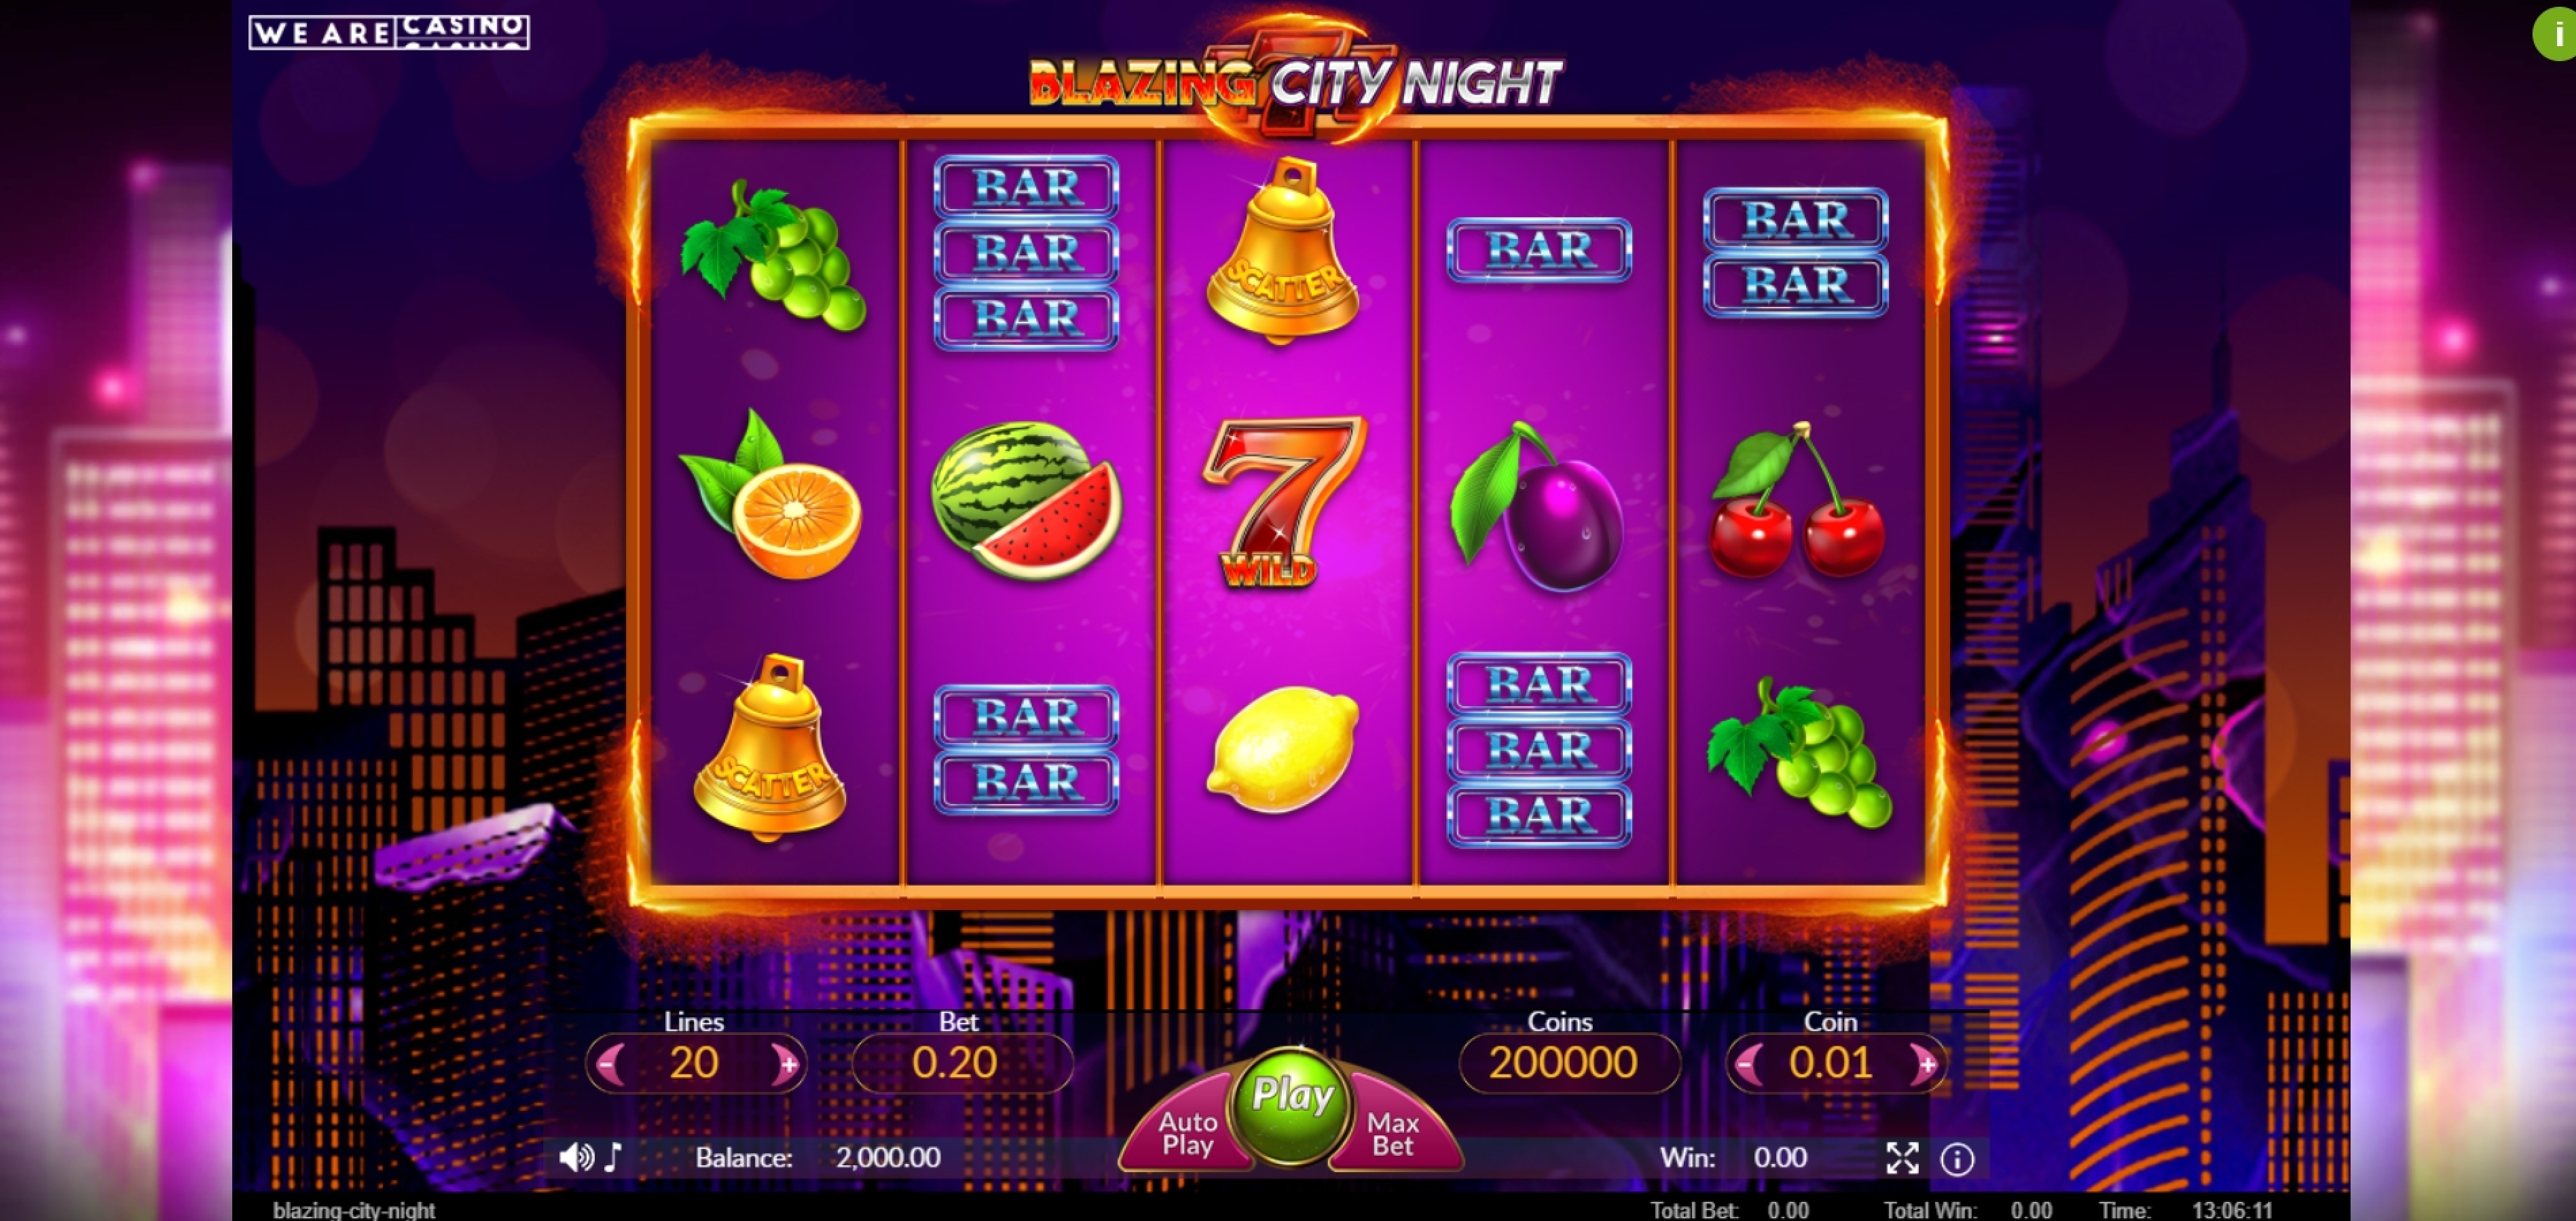 Reels in Blazing City Night Slot Game by We Are Casino